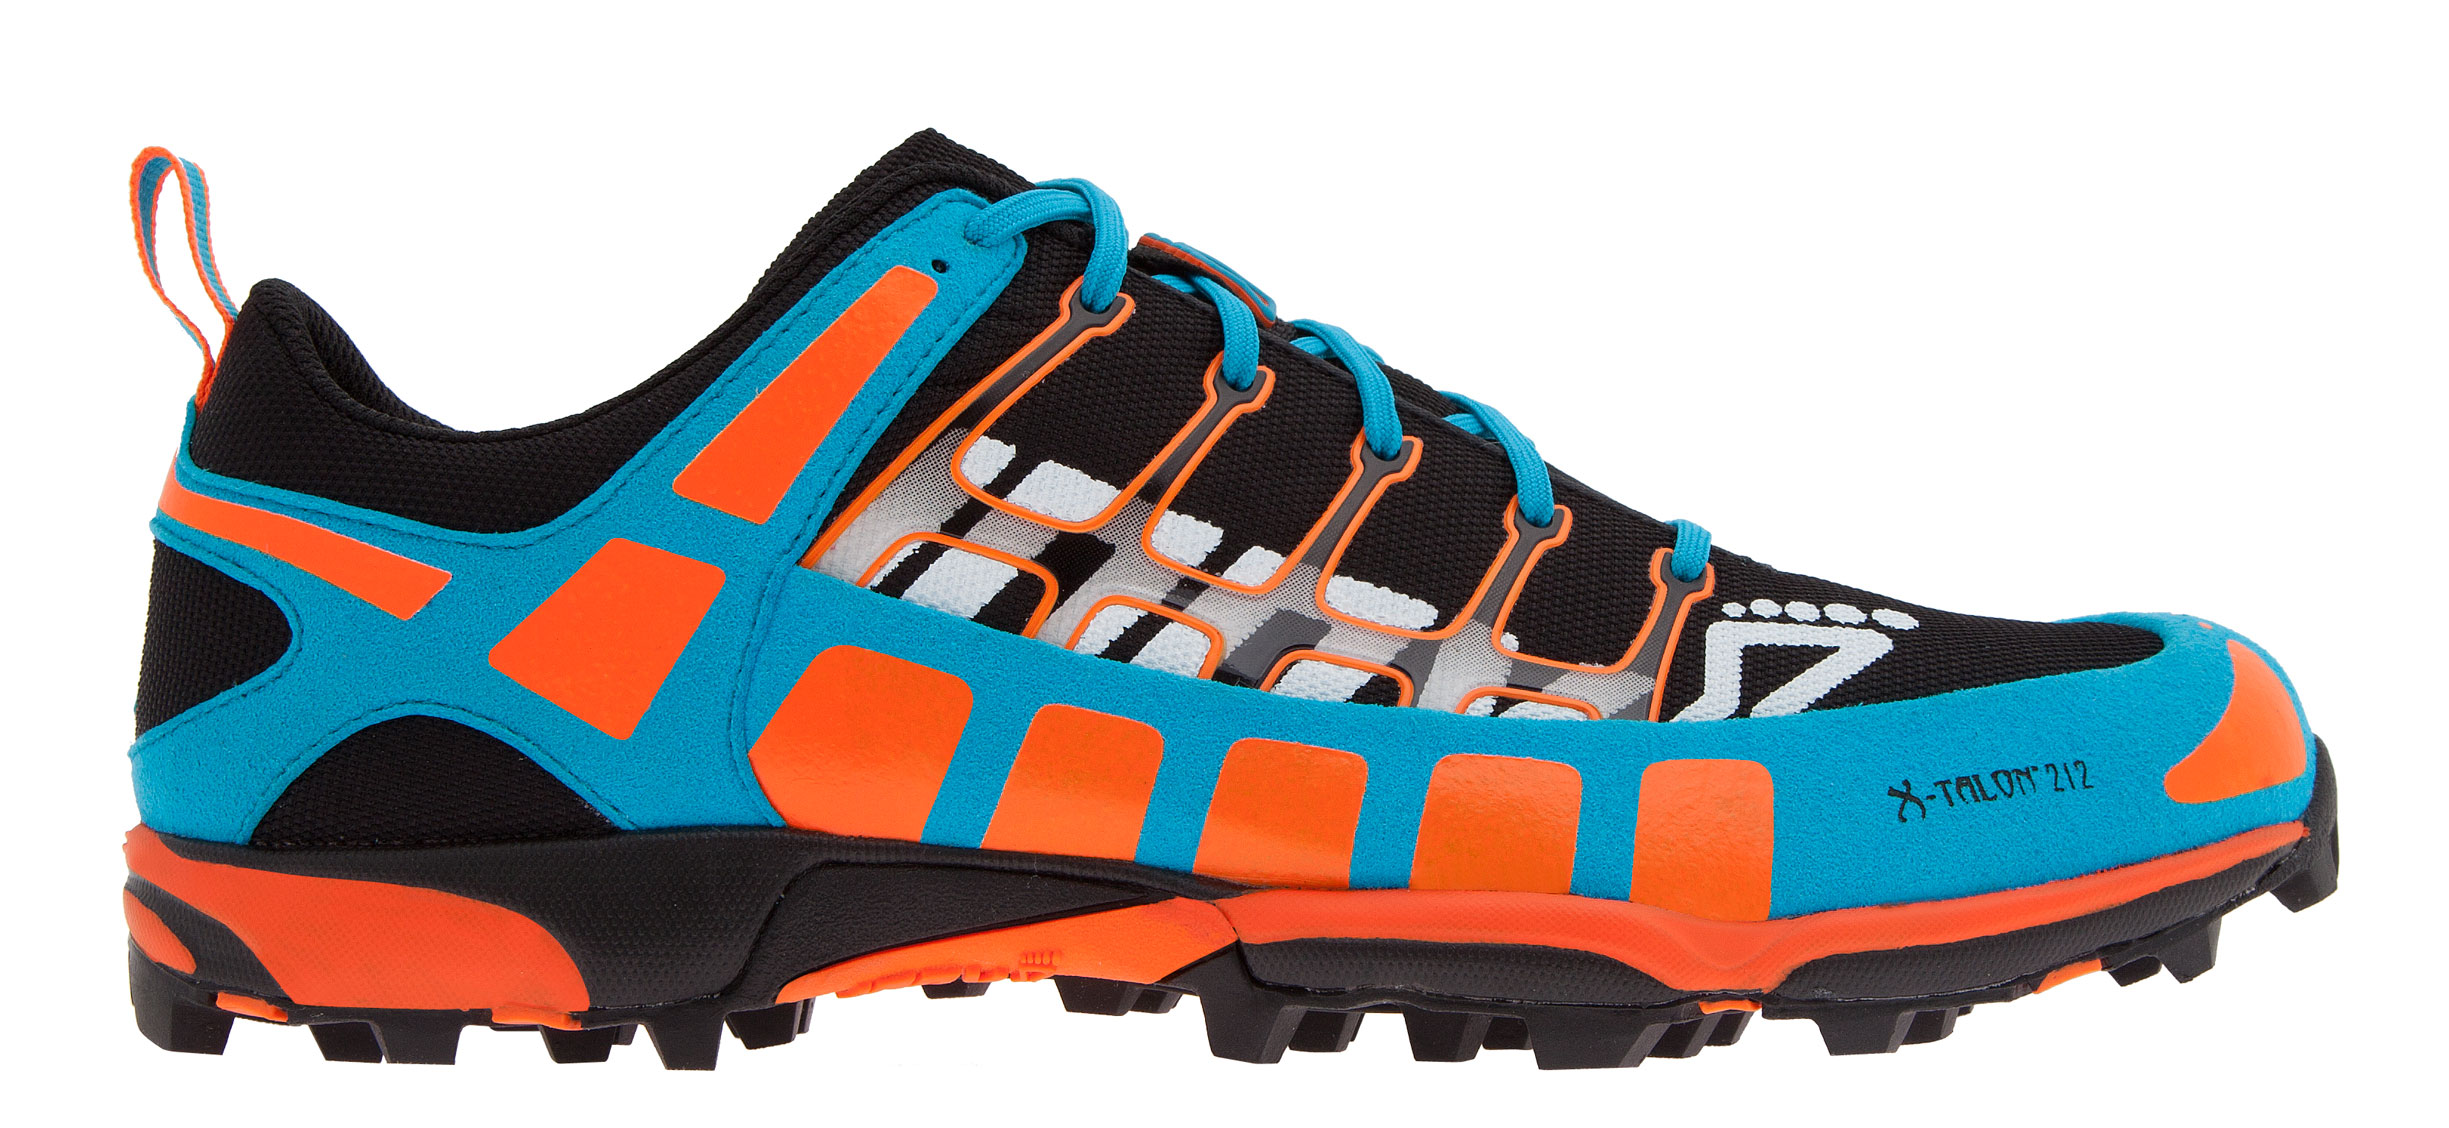 inov-8 X-Talon 212, as worn by Robbie during the West Highland Way Race.